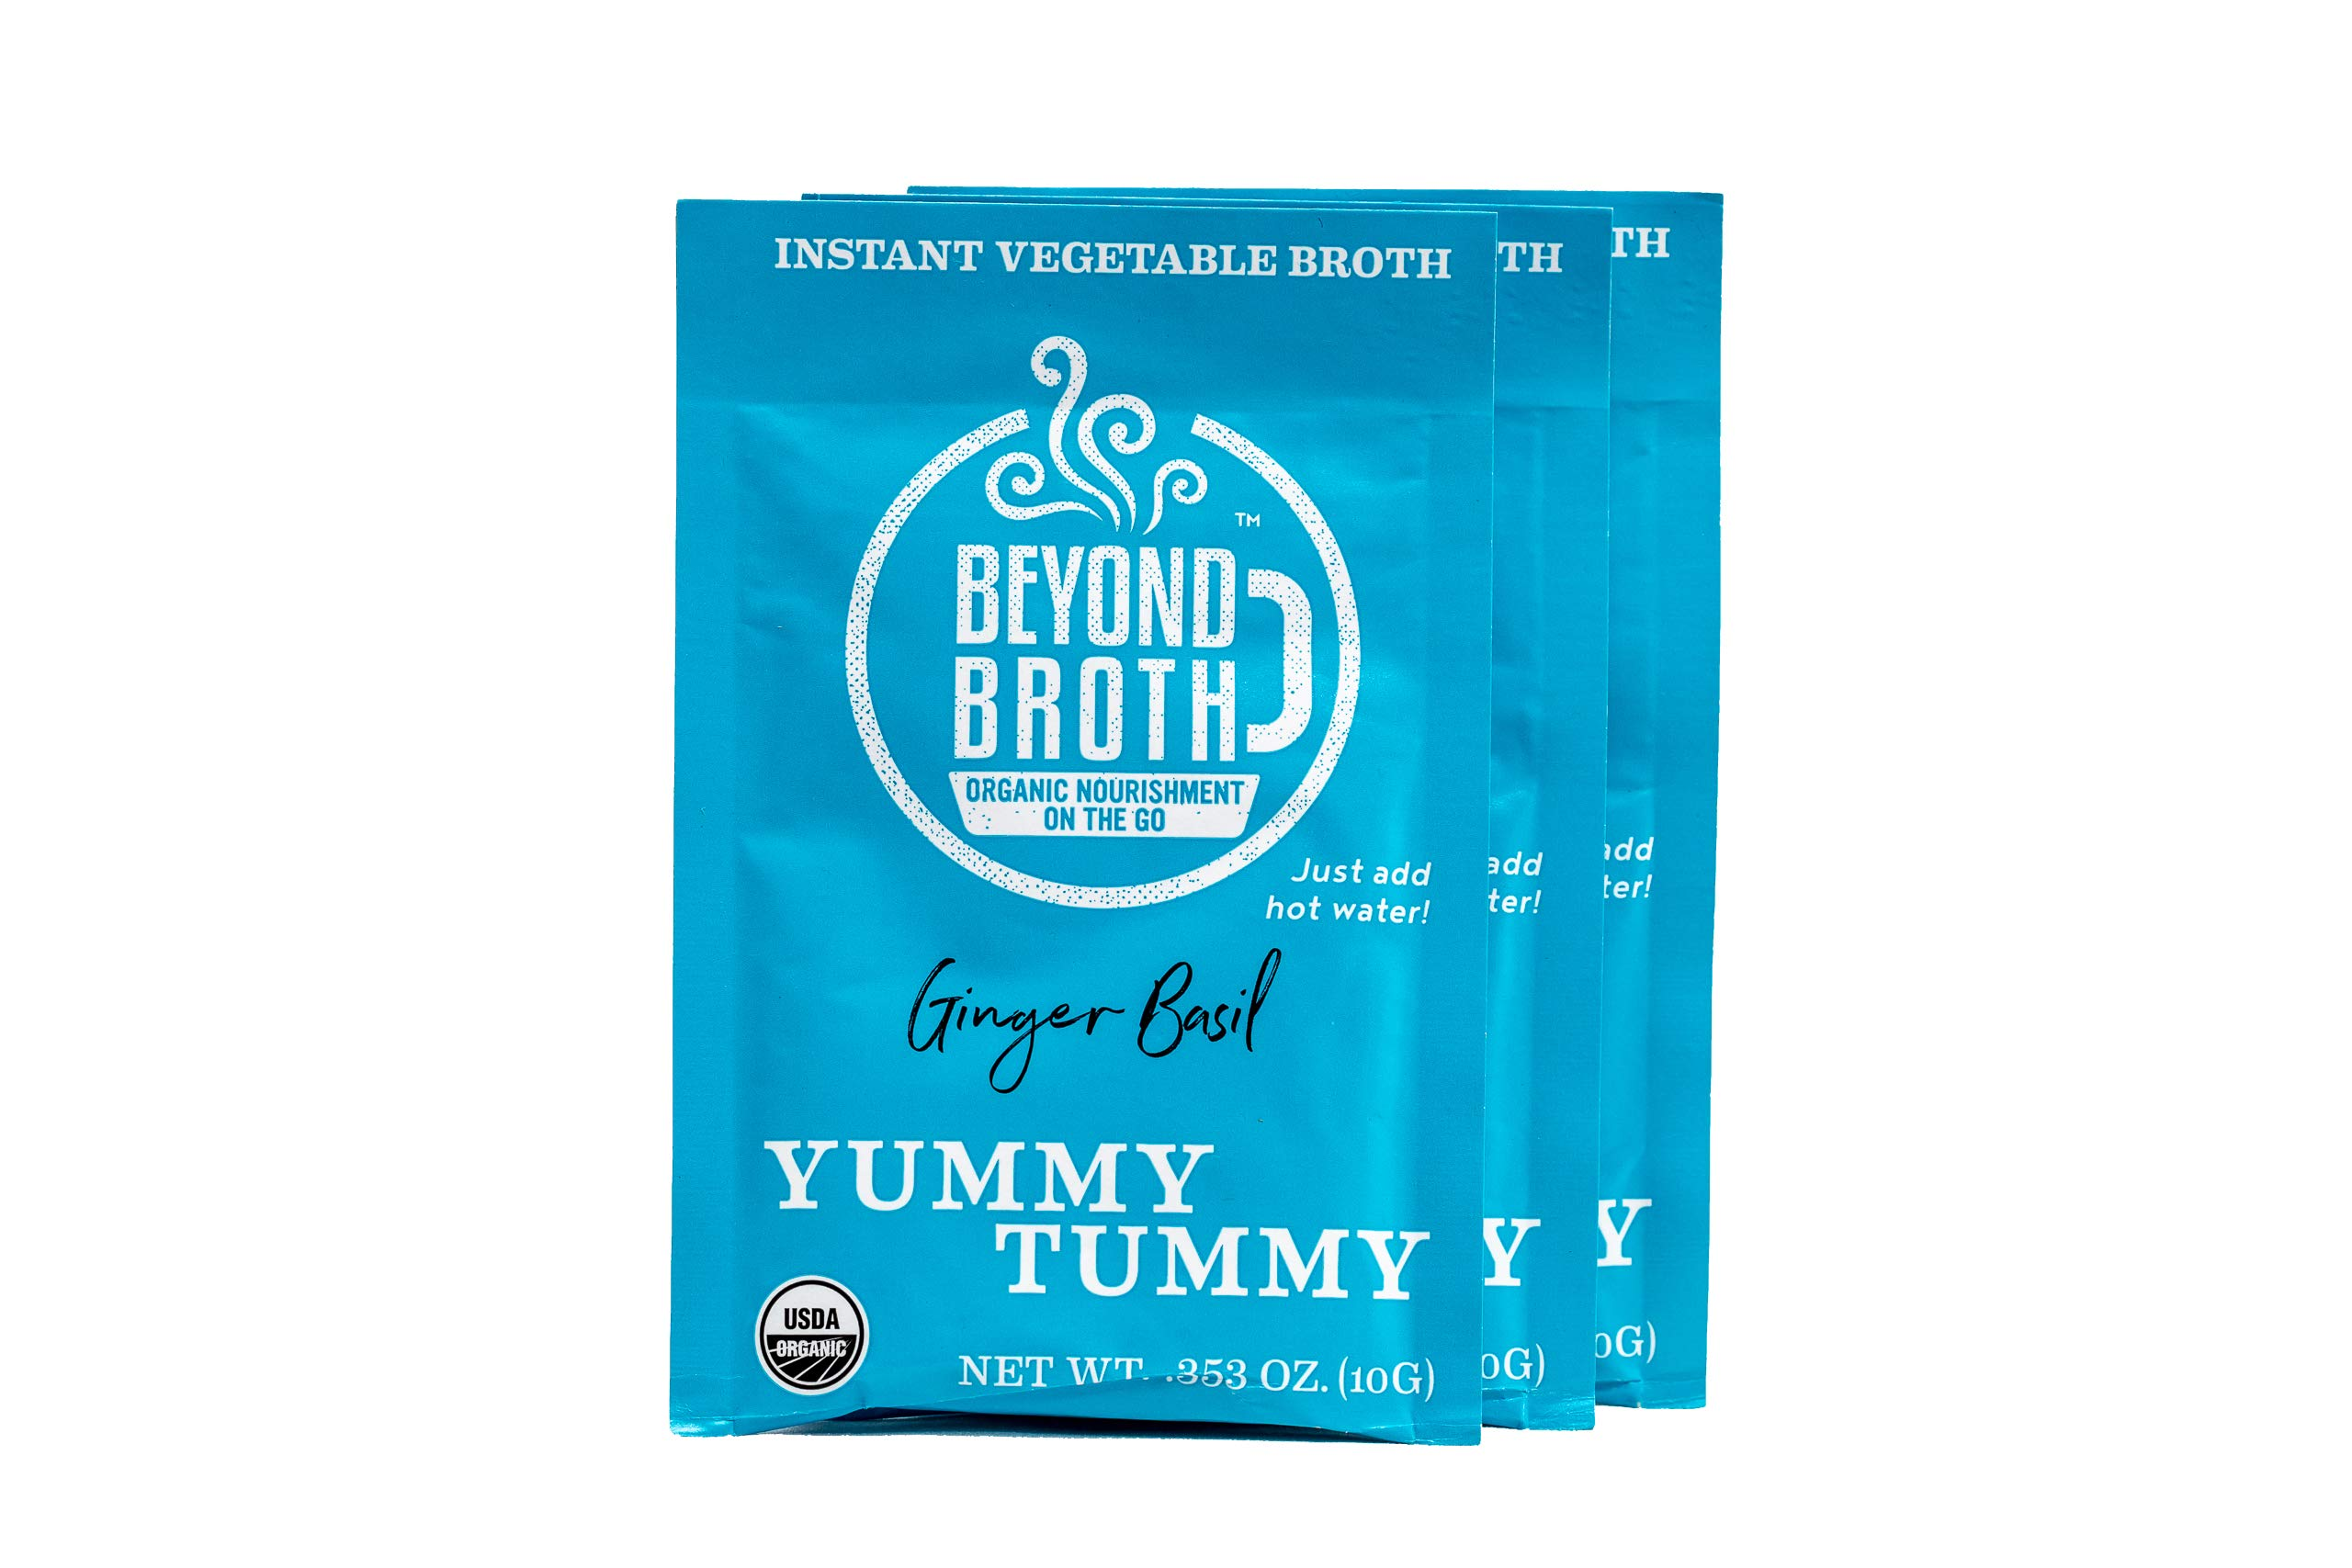 Beyond Broth Ginger Basil Yummy Tummy Organic Vegan Vegetable Instant Sipping Broth; For On The Go Or Cooking Keto, Paleo and Whole30 Friendly 3 single serve packets, Made in the USA